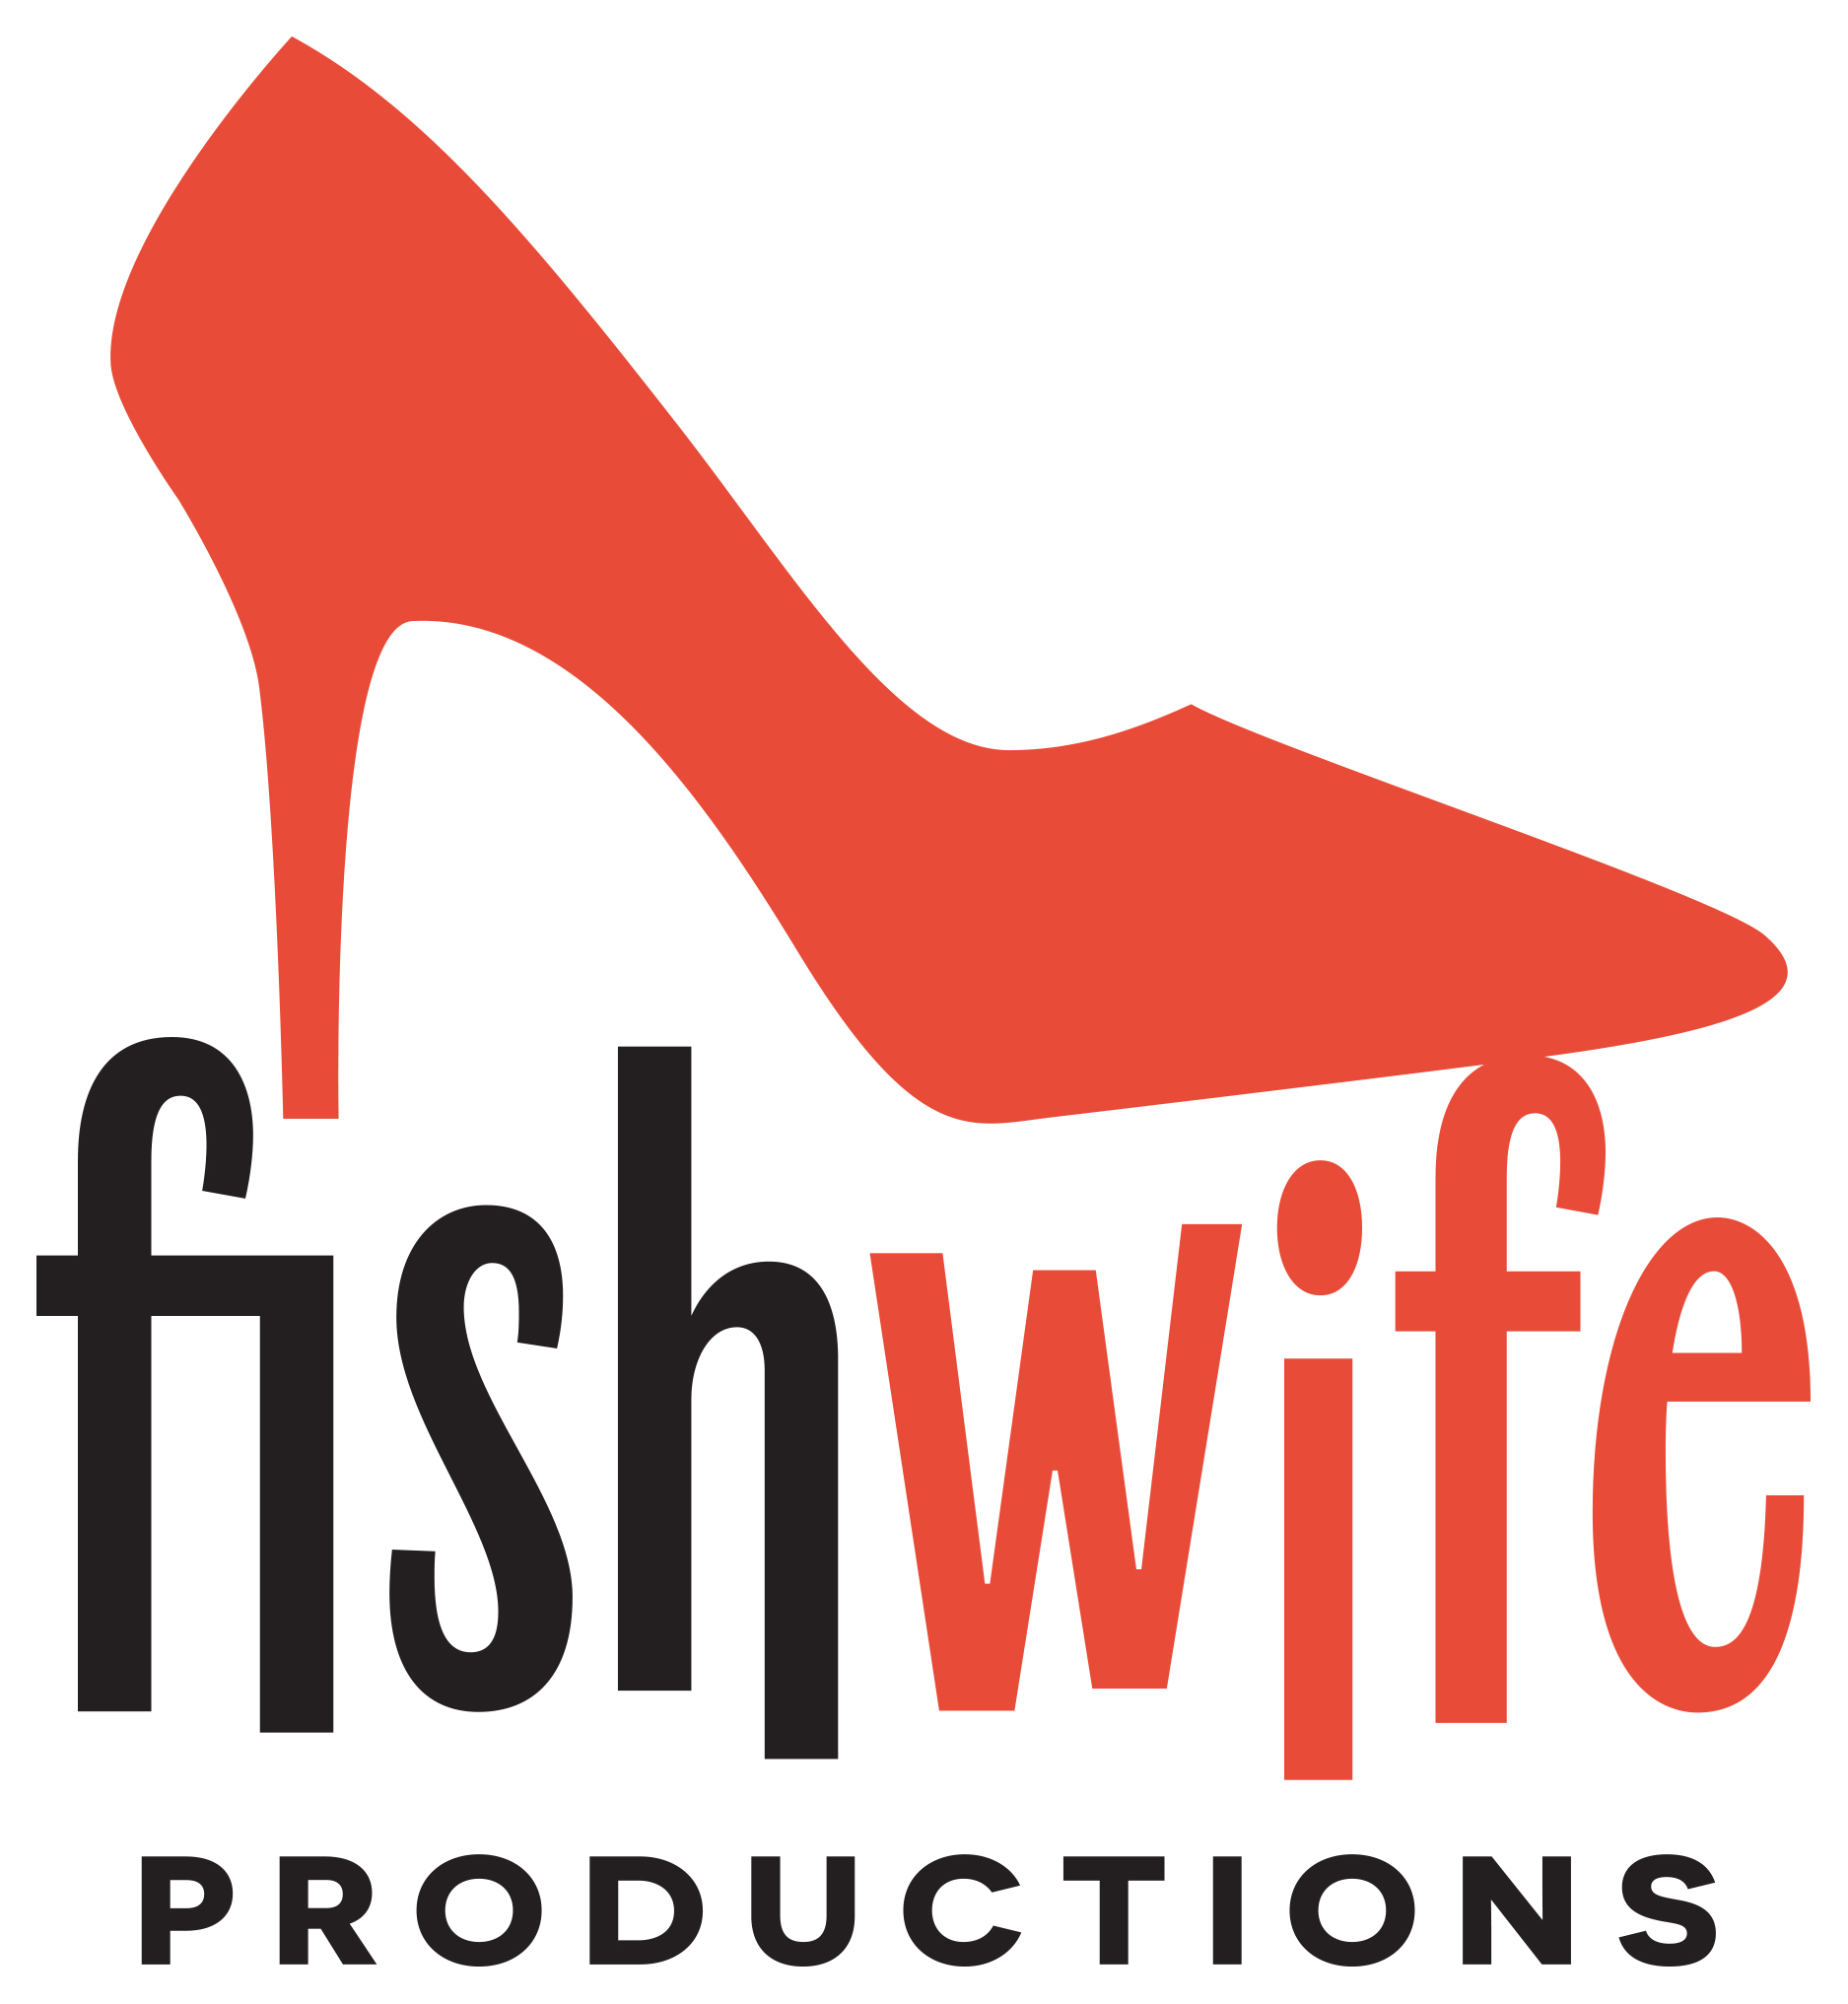 Fishwife_Productions_Logo_Vert_RGB_COLOR_6.jpg